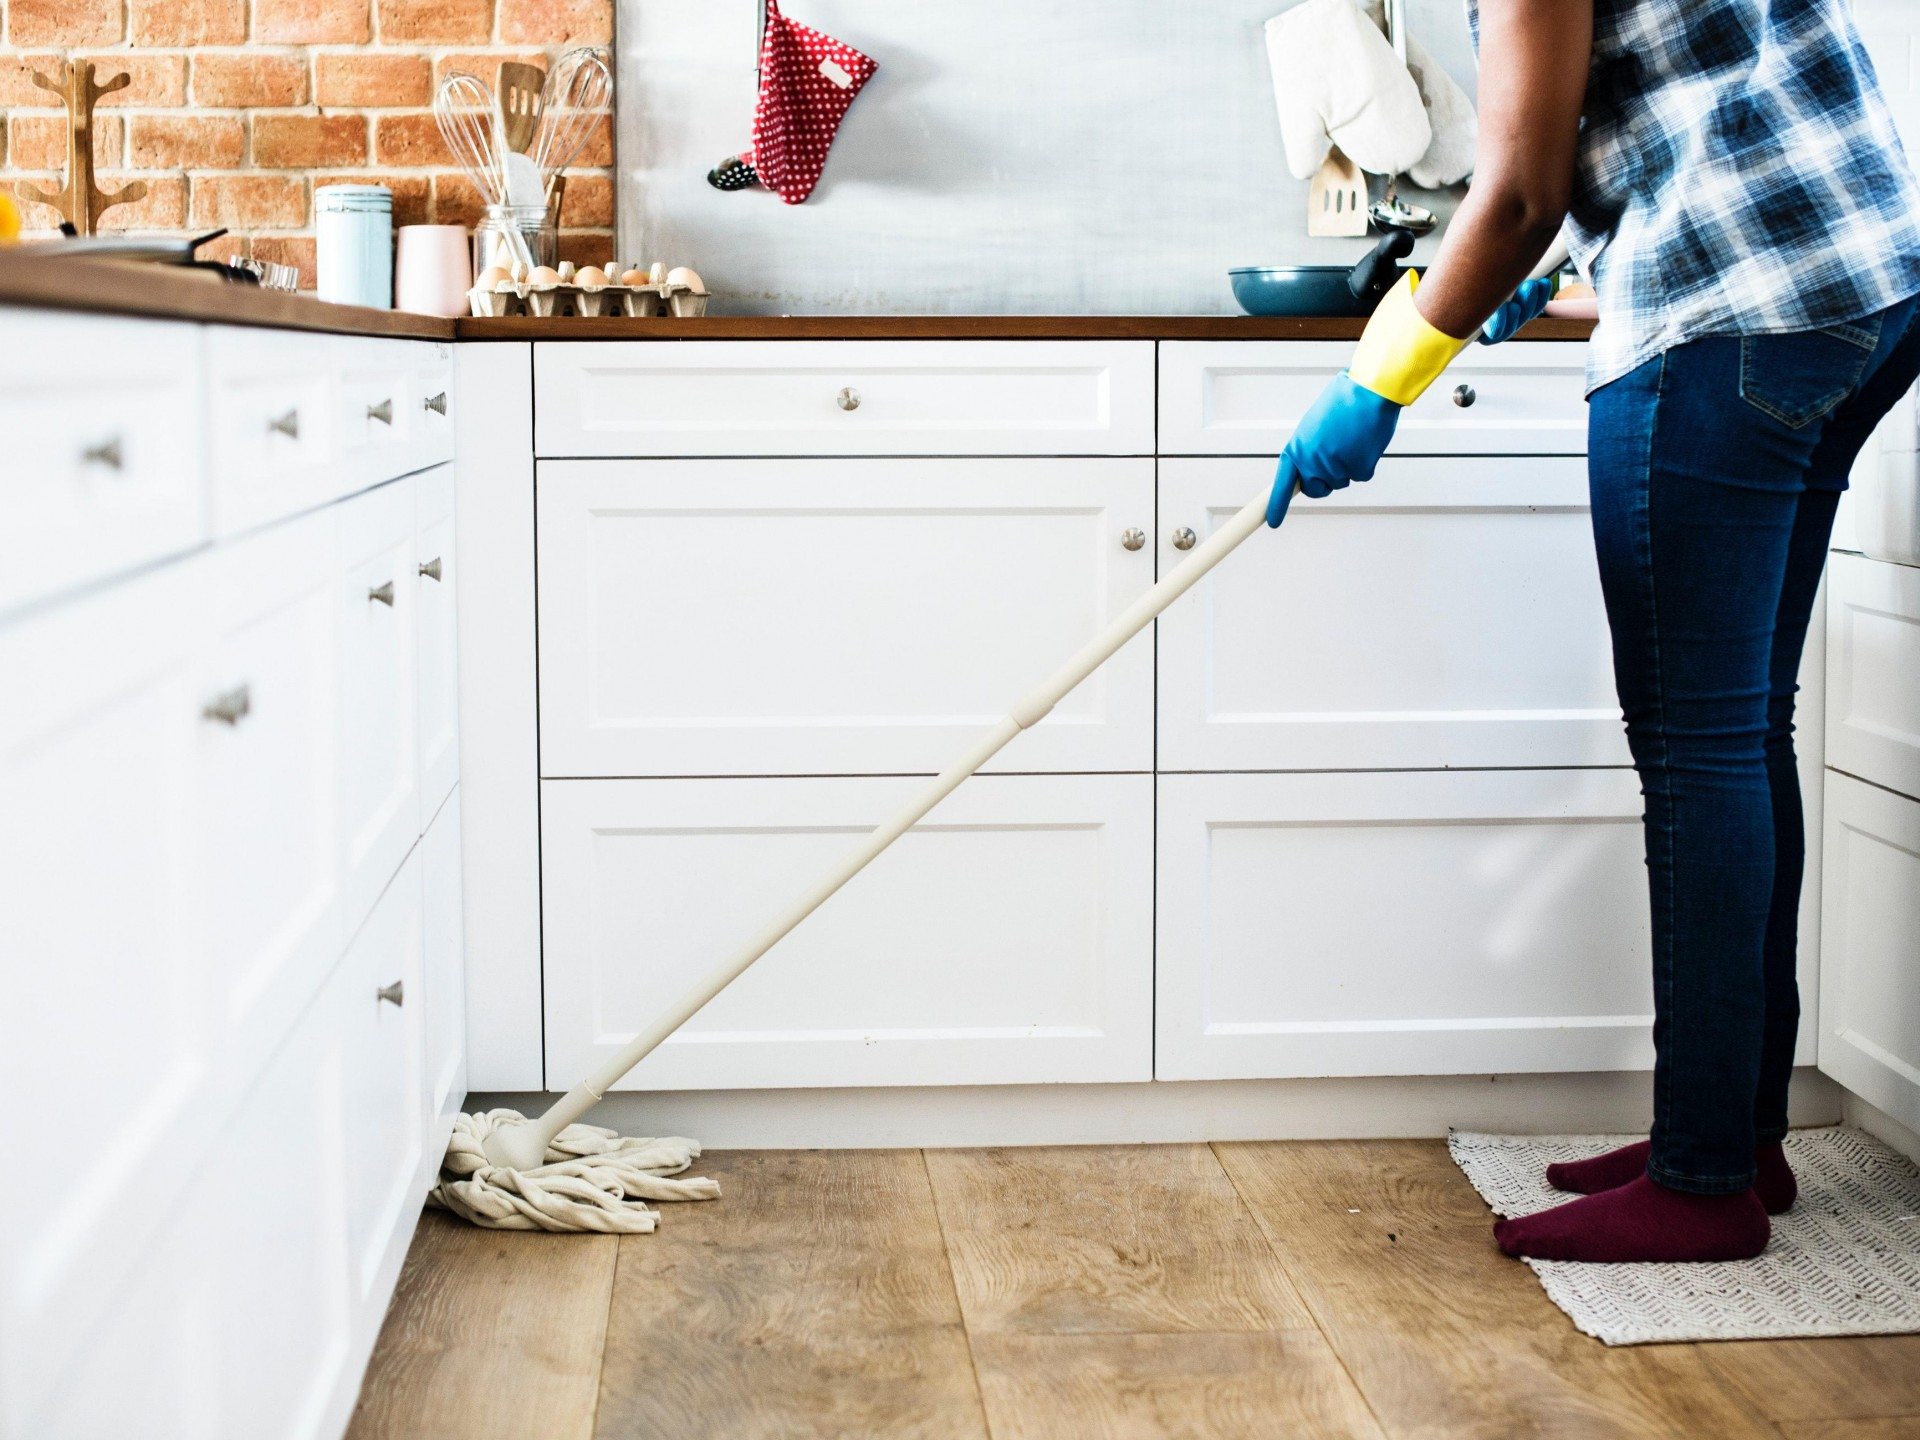 125% Return on Domestic Cleaning established 12 years